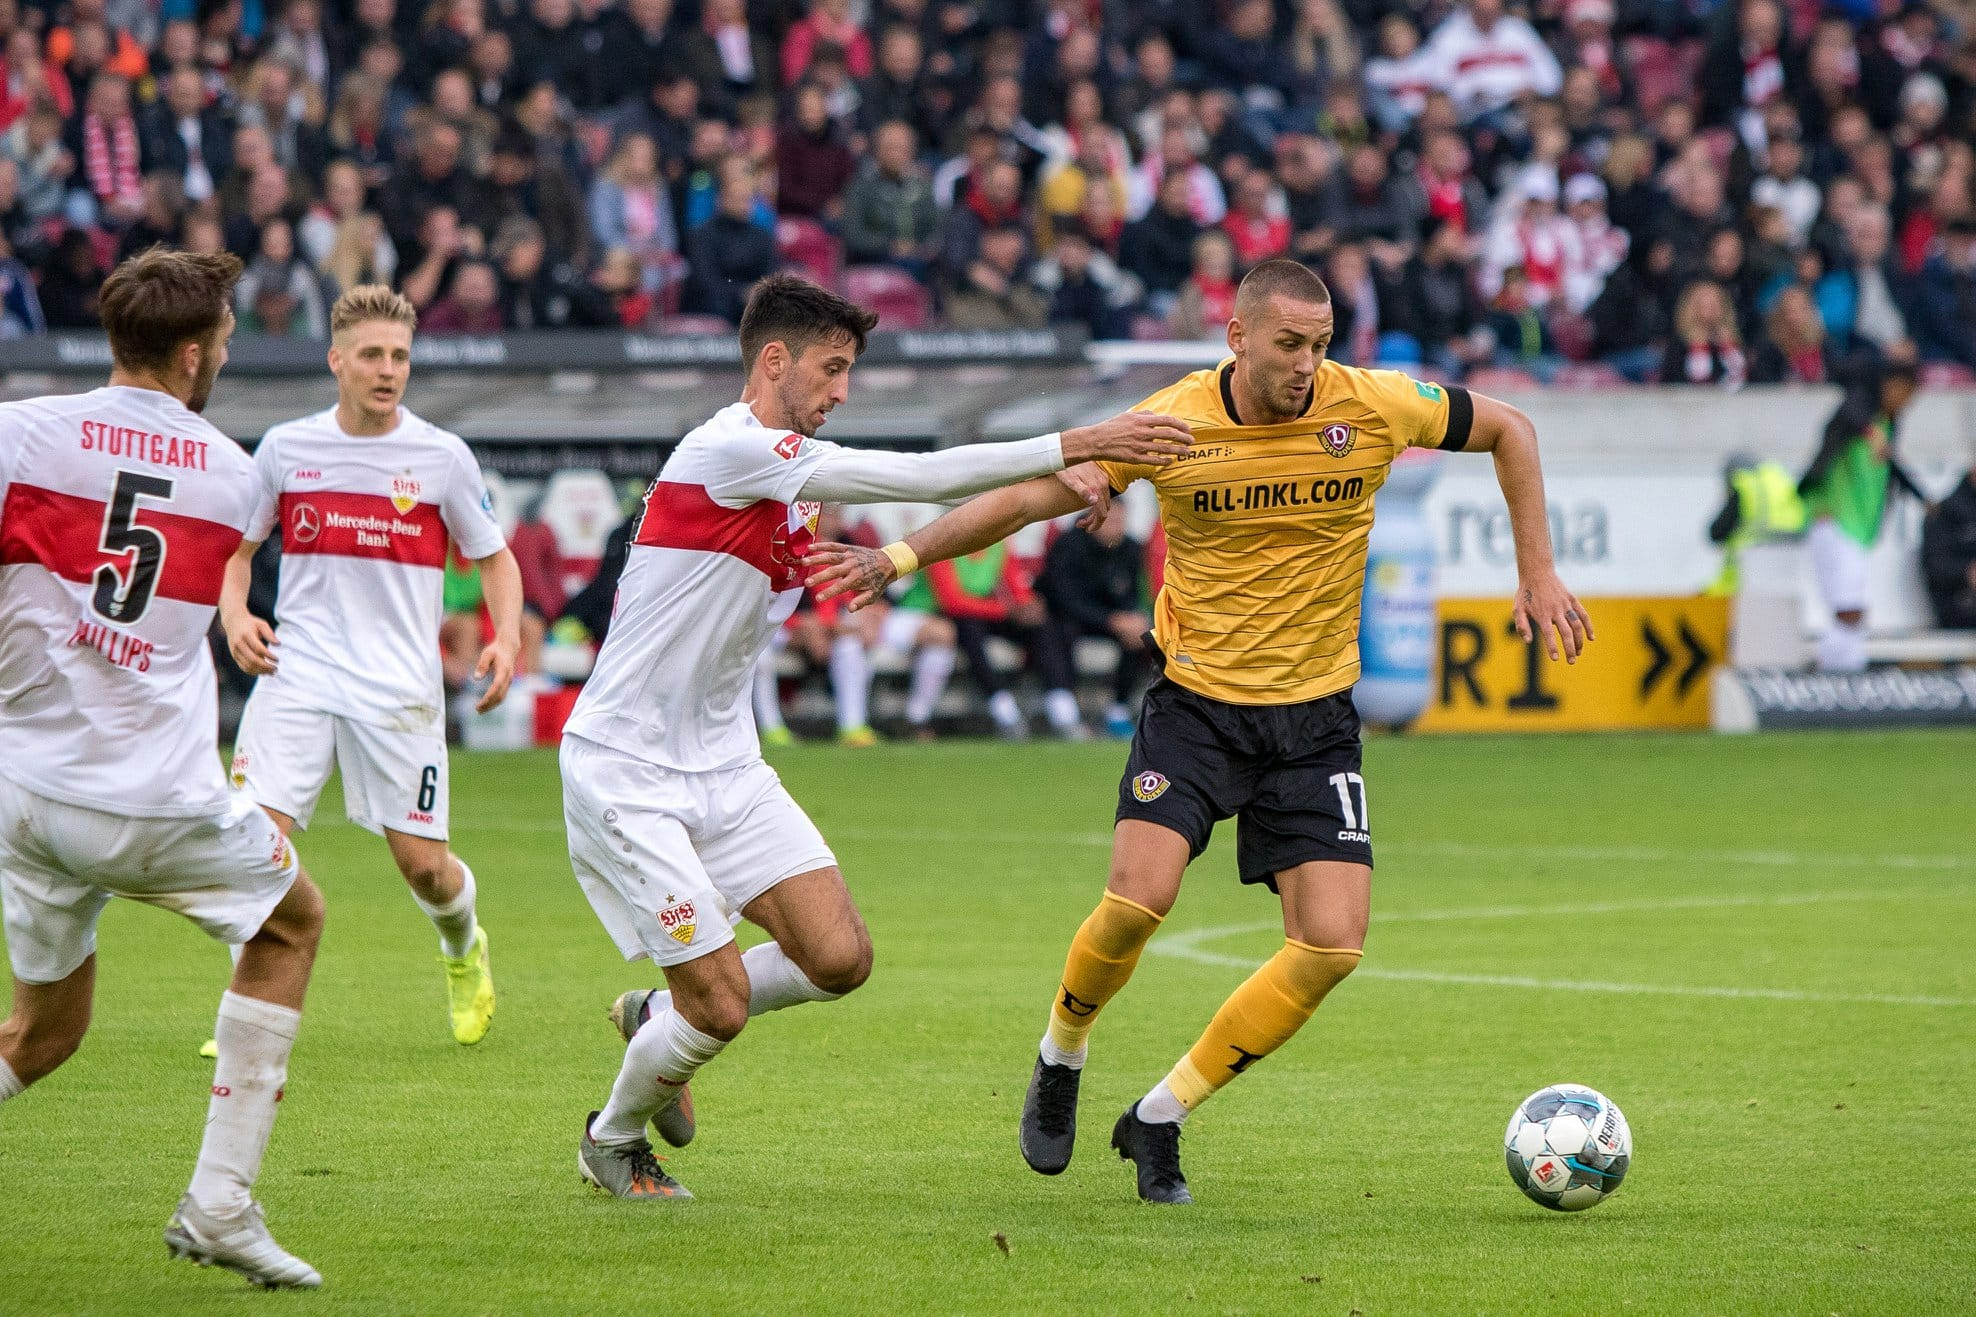 soi-keo-sg-dynamo-dresden-vs-greuther-furth-vao-23h30-ngay-9-6-2020-1